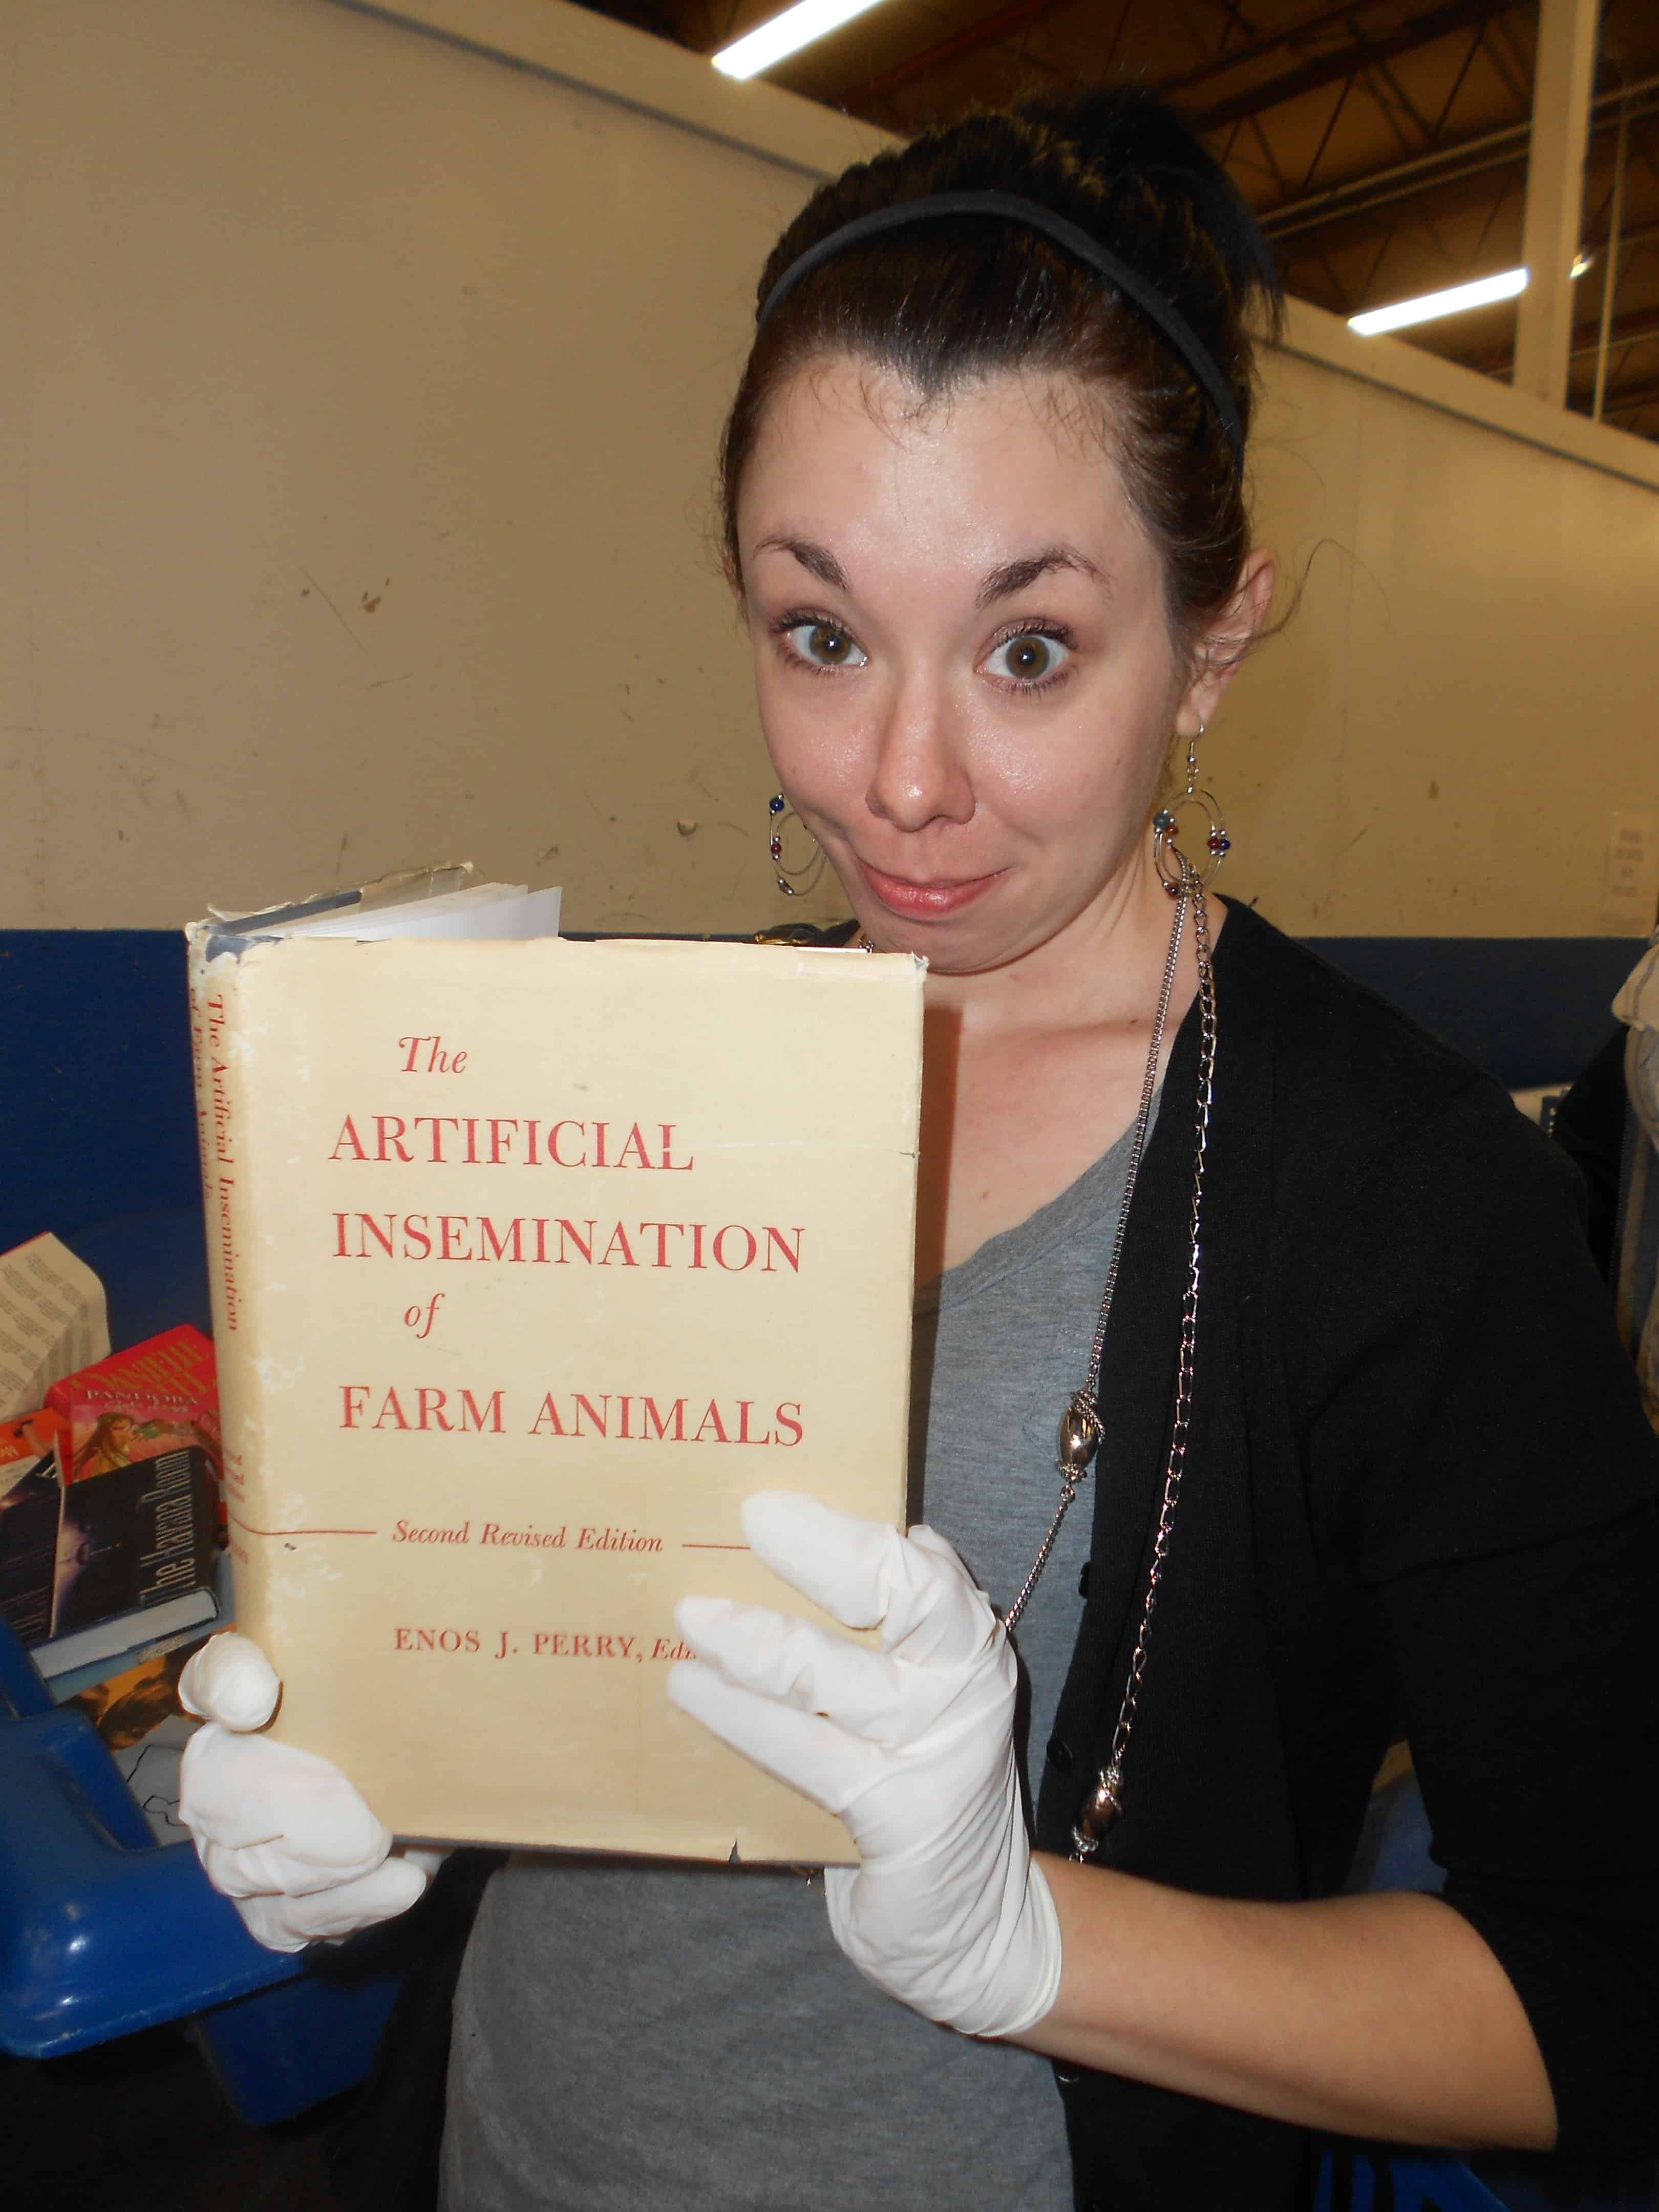 refashionista holding up book titled the artificial insemination of farm animals